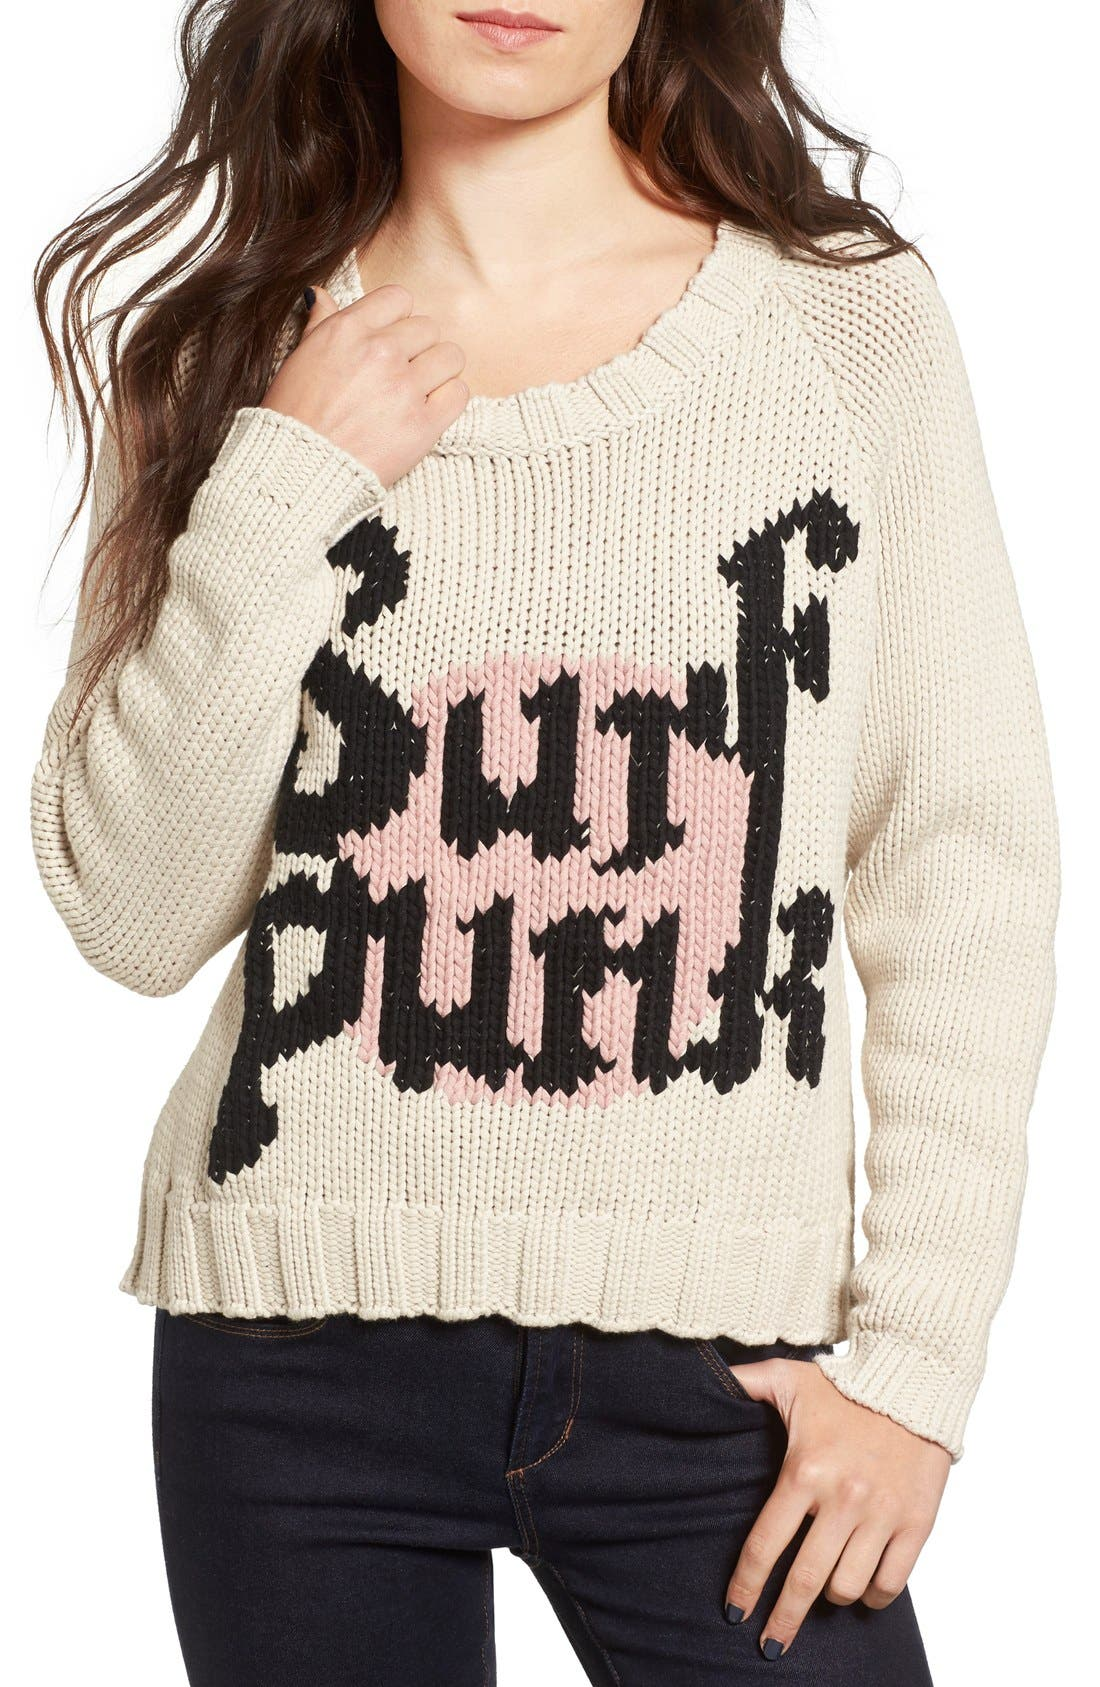 Alternate Image 1 Selected - One Teaspoon Surf Punk Intarsia Knit Sweater